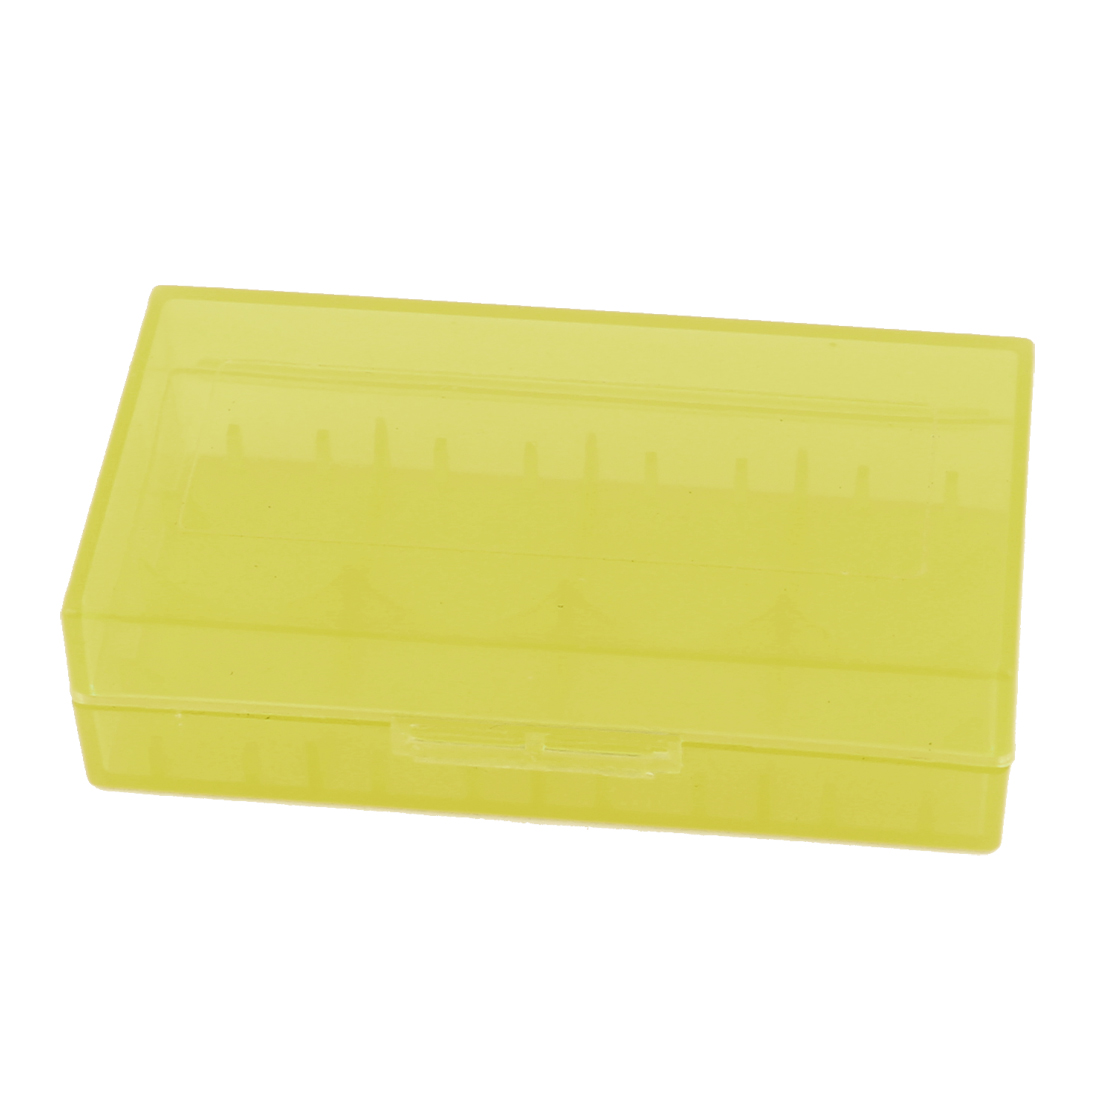 Hard Plastic Case Holder Storage Box Yellow for 18650 16430 CR123A Battery